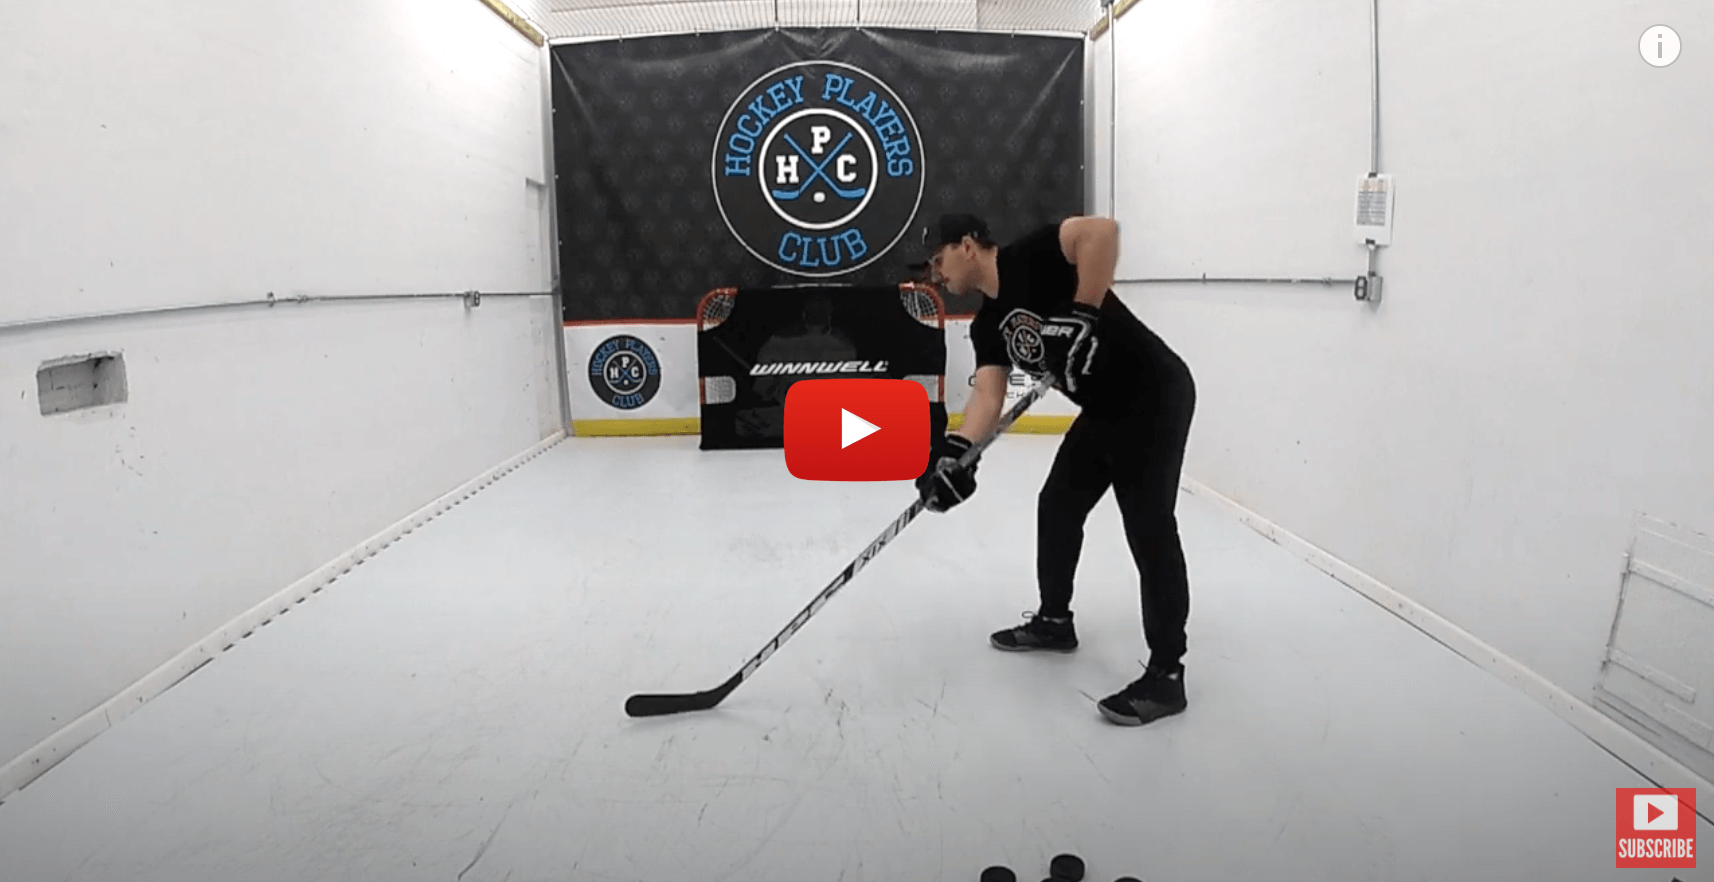 How to Take a Backhand Shot - Tips and Drills for a Dangerous Backhand